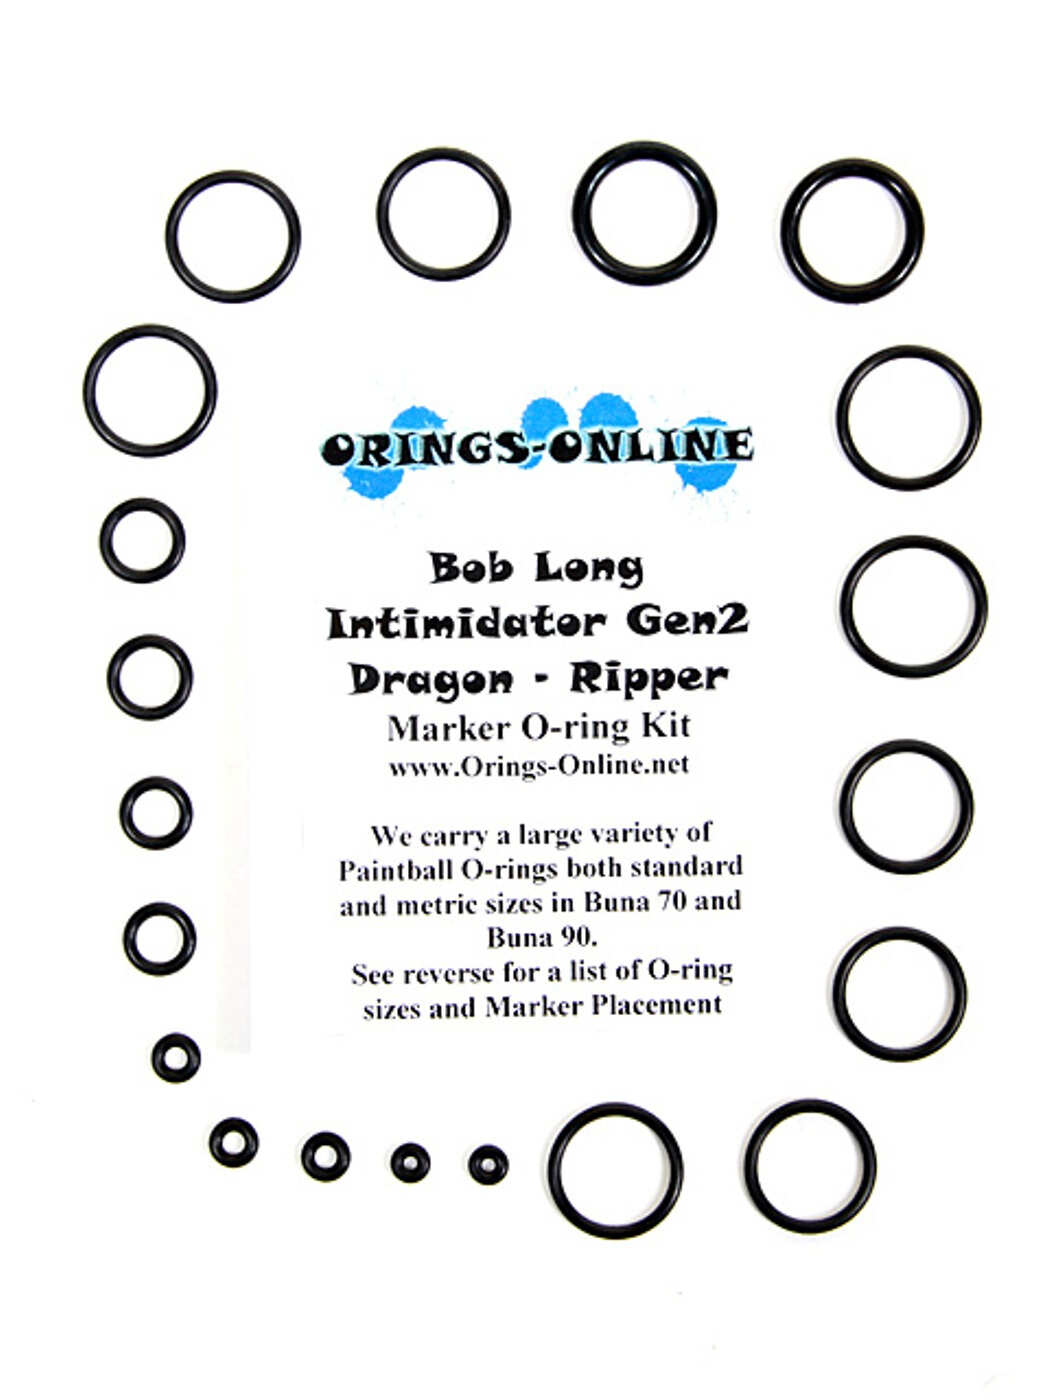 Bob Long Intimidator Gen2 Dragon Ripper Marker O-ring Kit